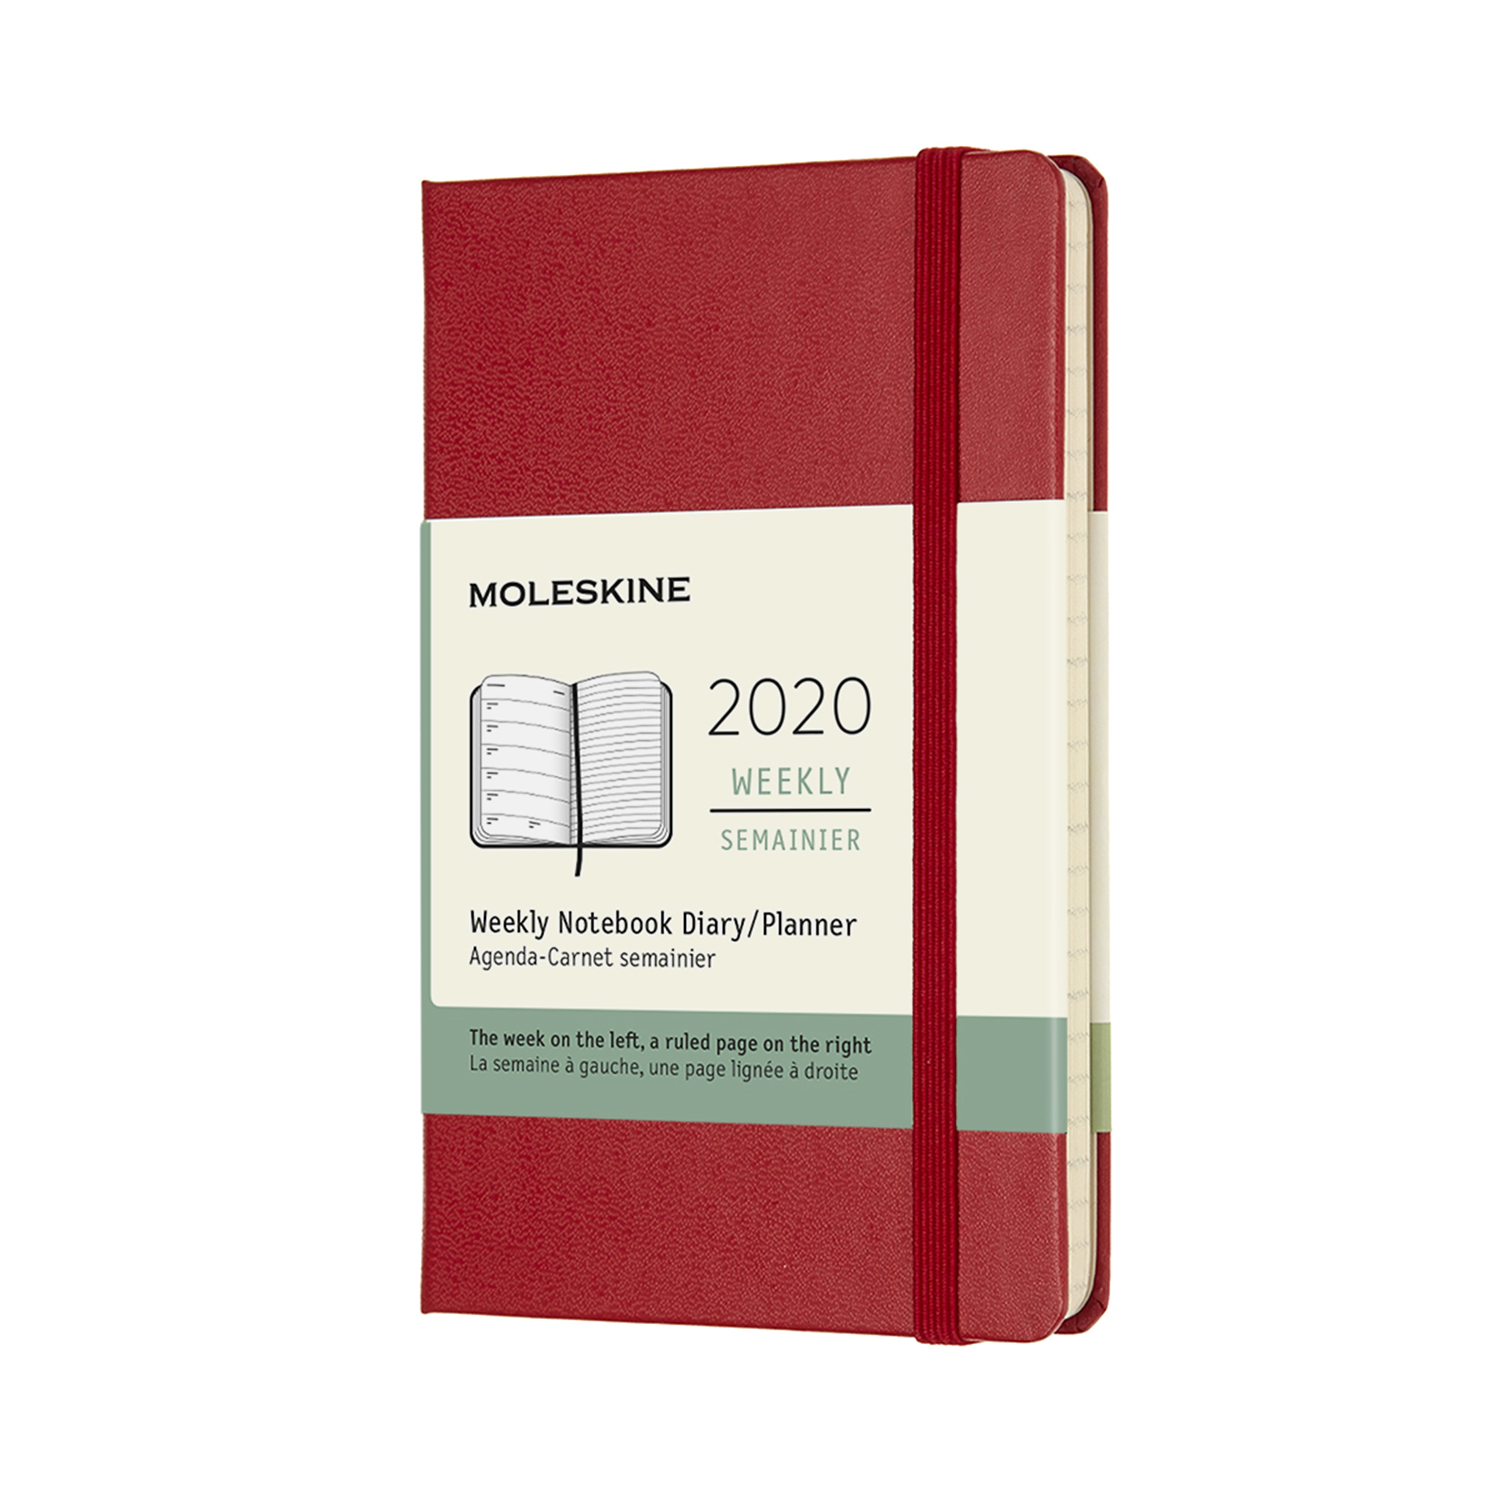 SCARLET RED WEEKLY POCKET HARDCOVER 2020 DIARY